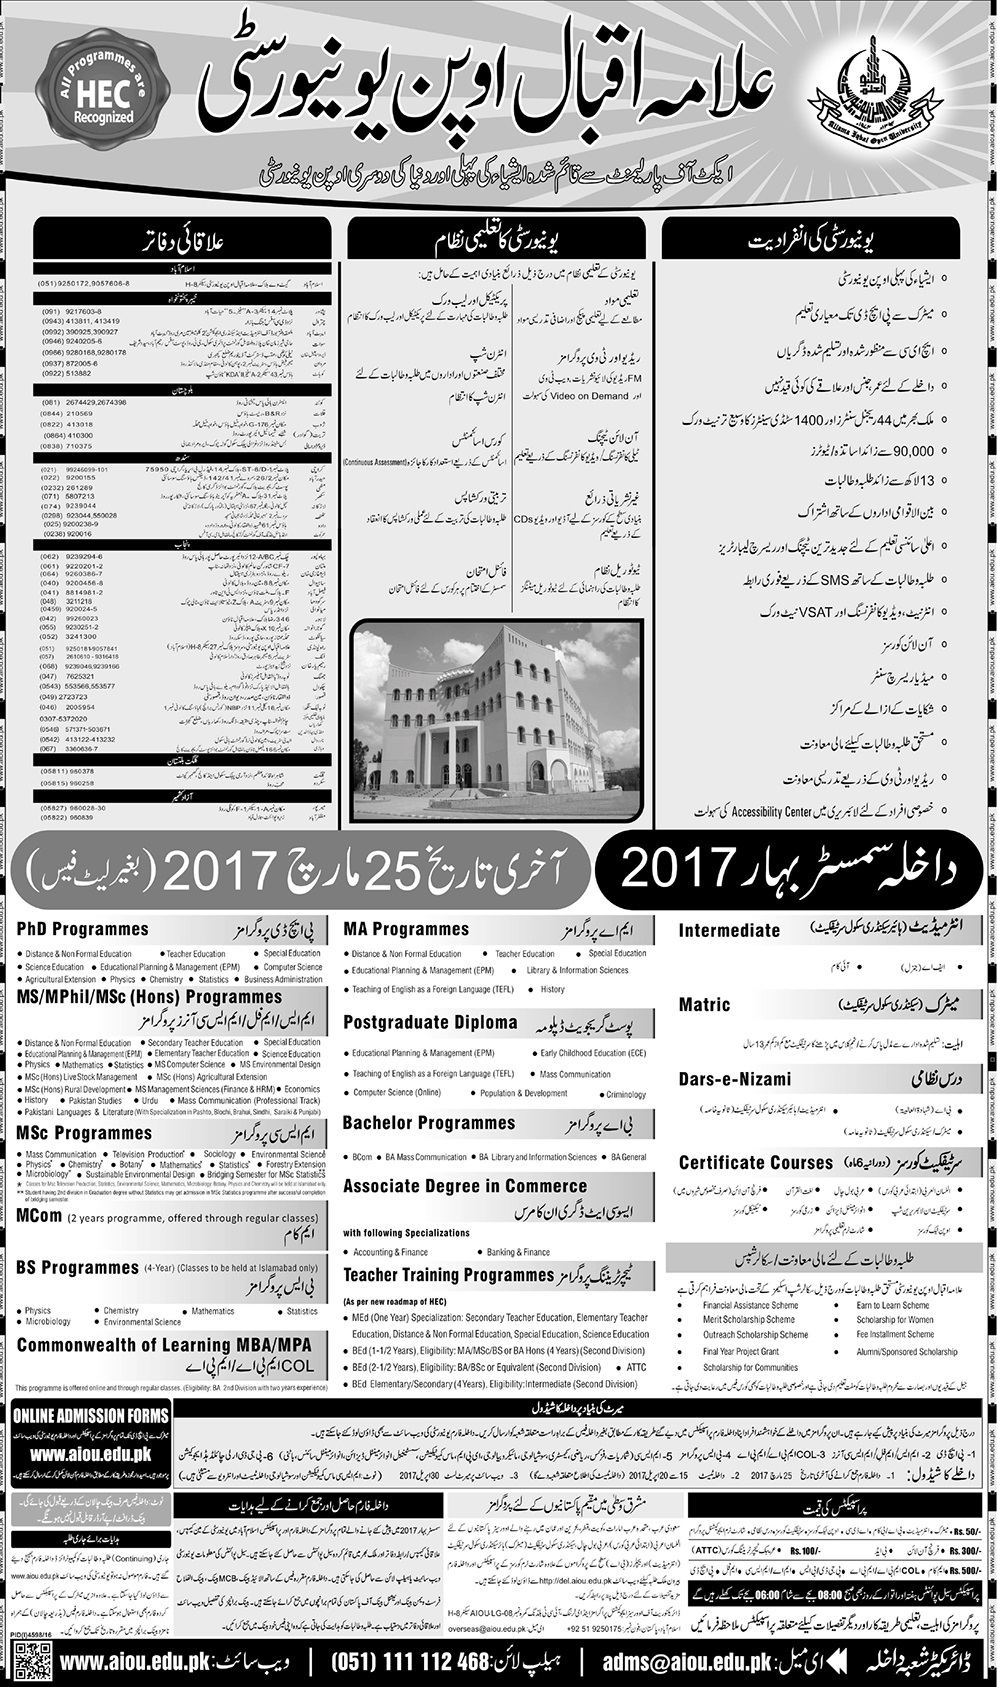 Allama Iqbal Open University, Spring Admission '17